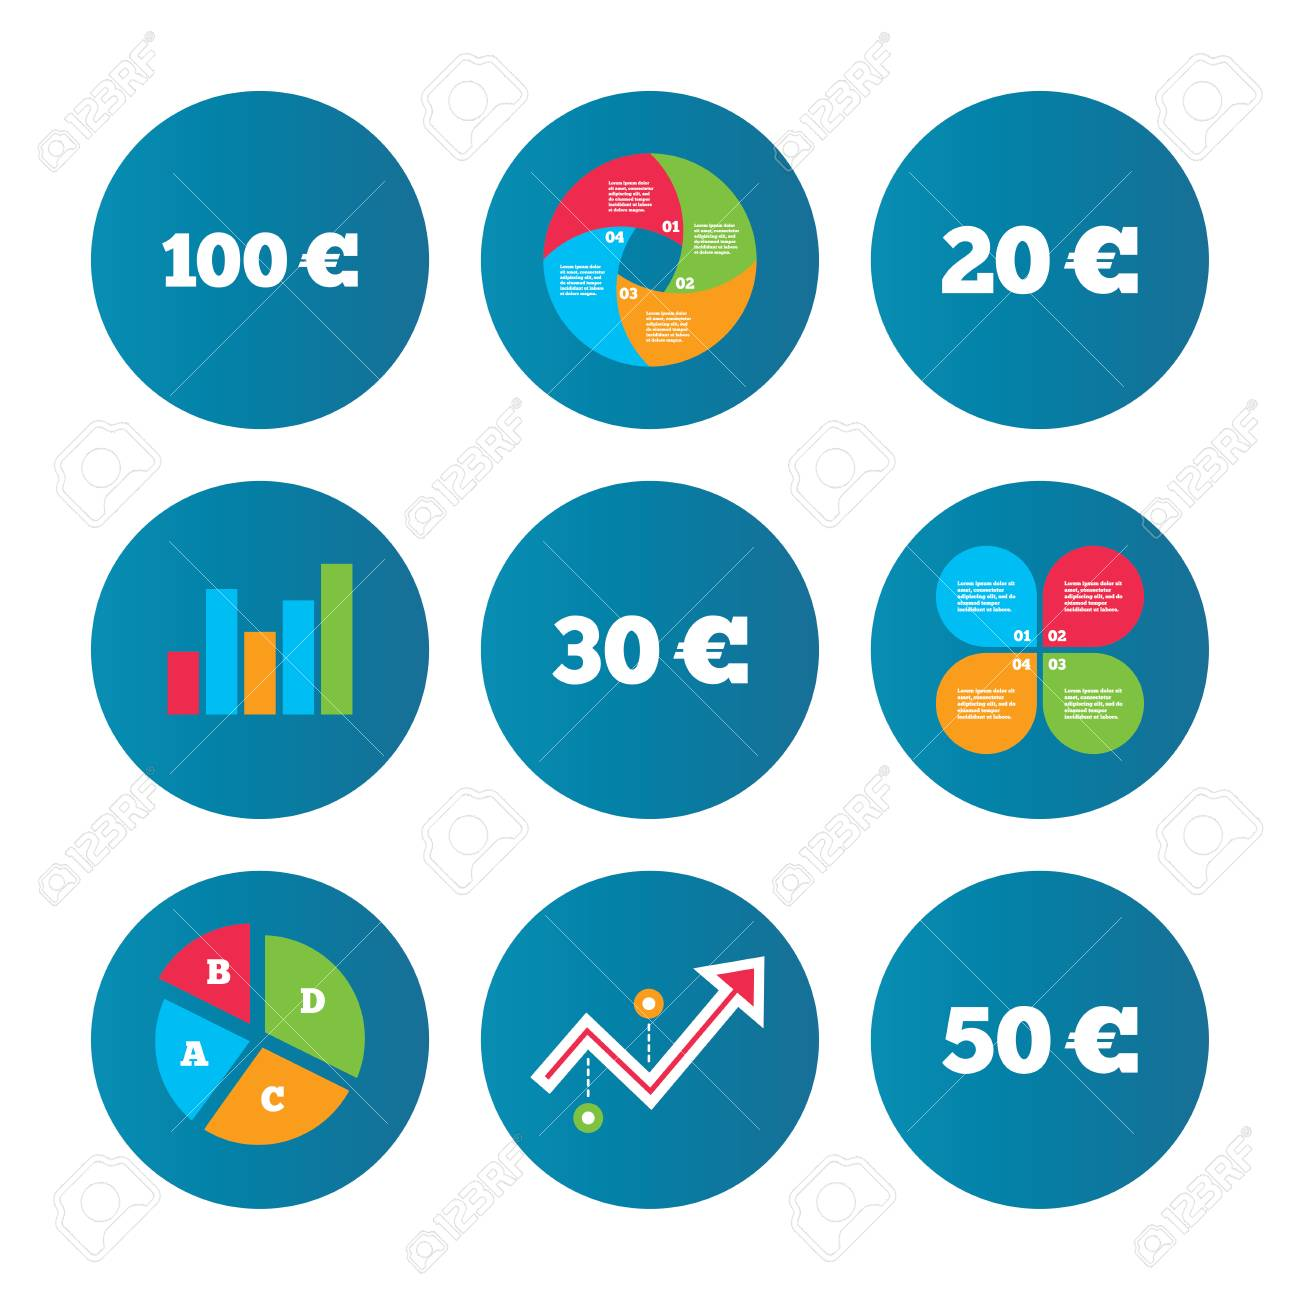 Business pie chart growth curve presentation buttons money business pie chart growth curve presentation buttons money in euro icons 100 geenschuldenfo Gallery